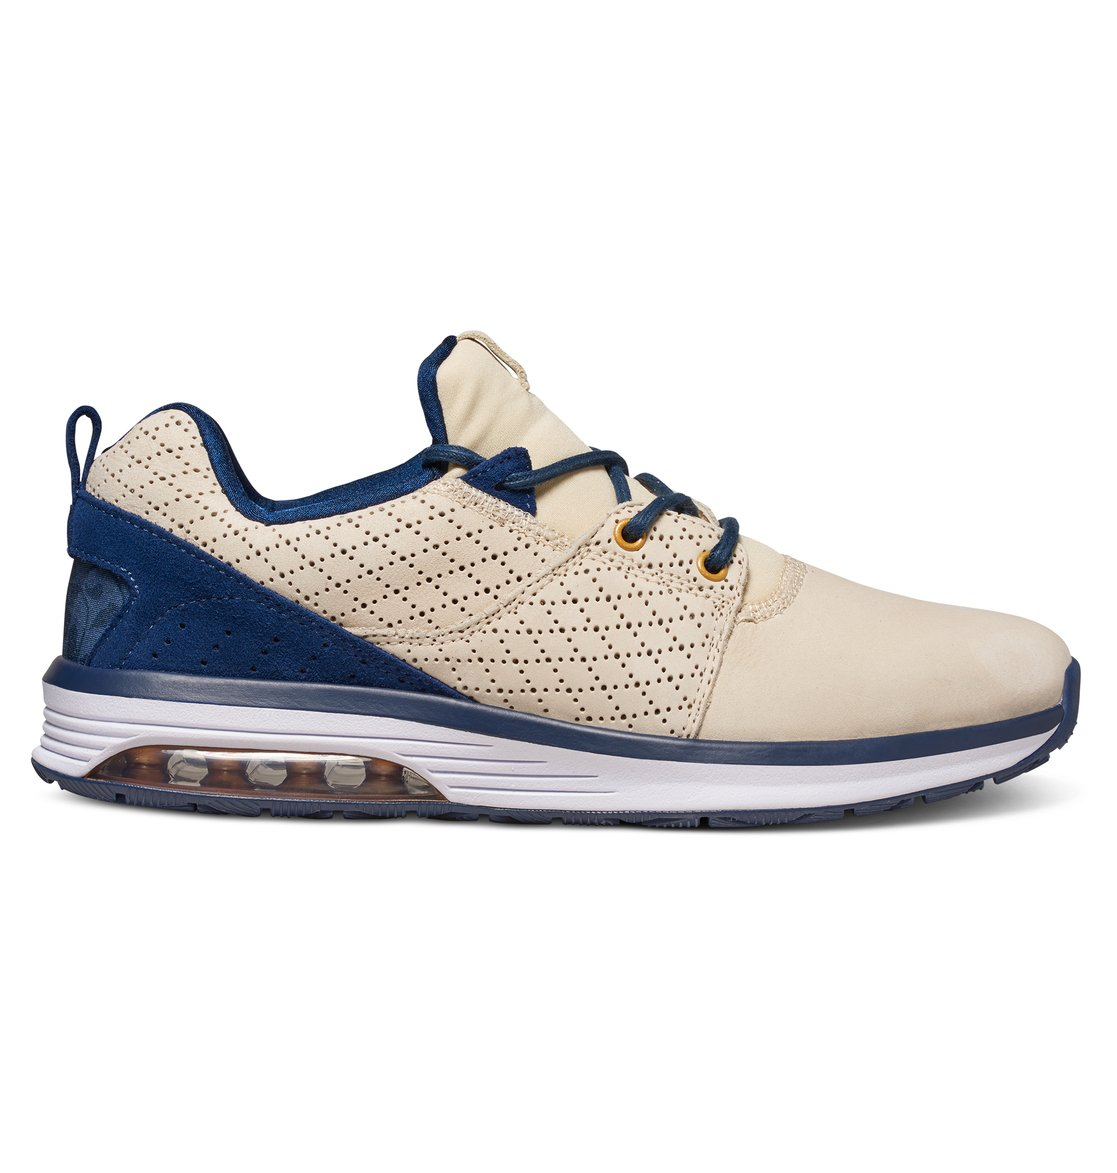 DC Shoes Heathrow - Shoes - Chaussures - Homme ub8eYs